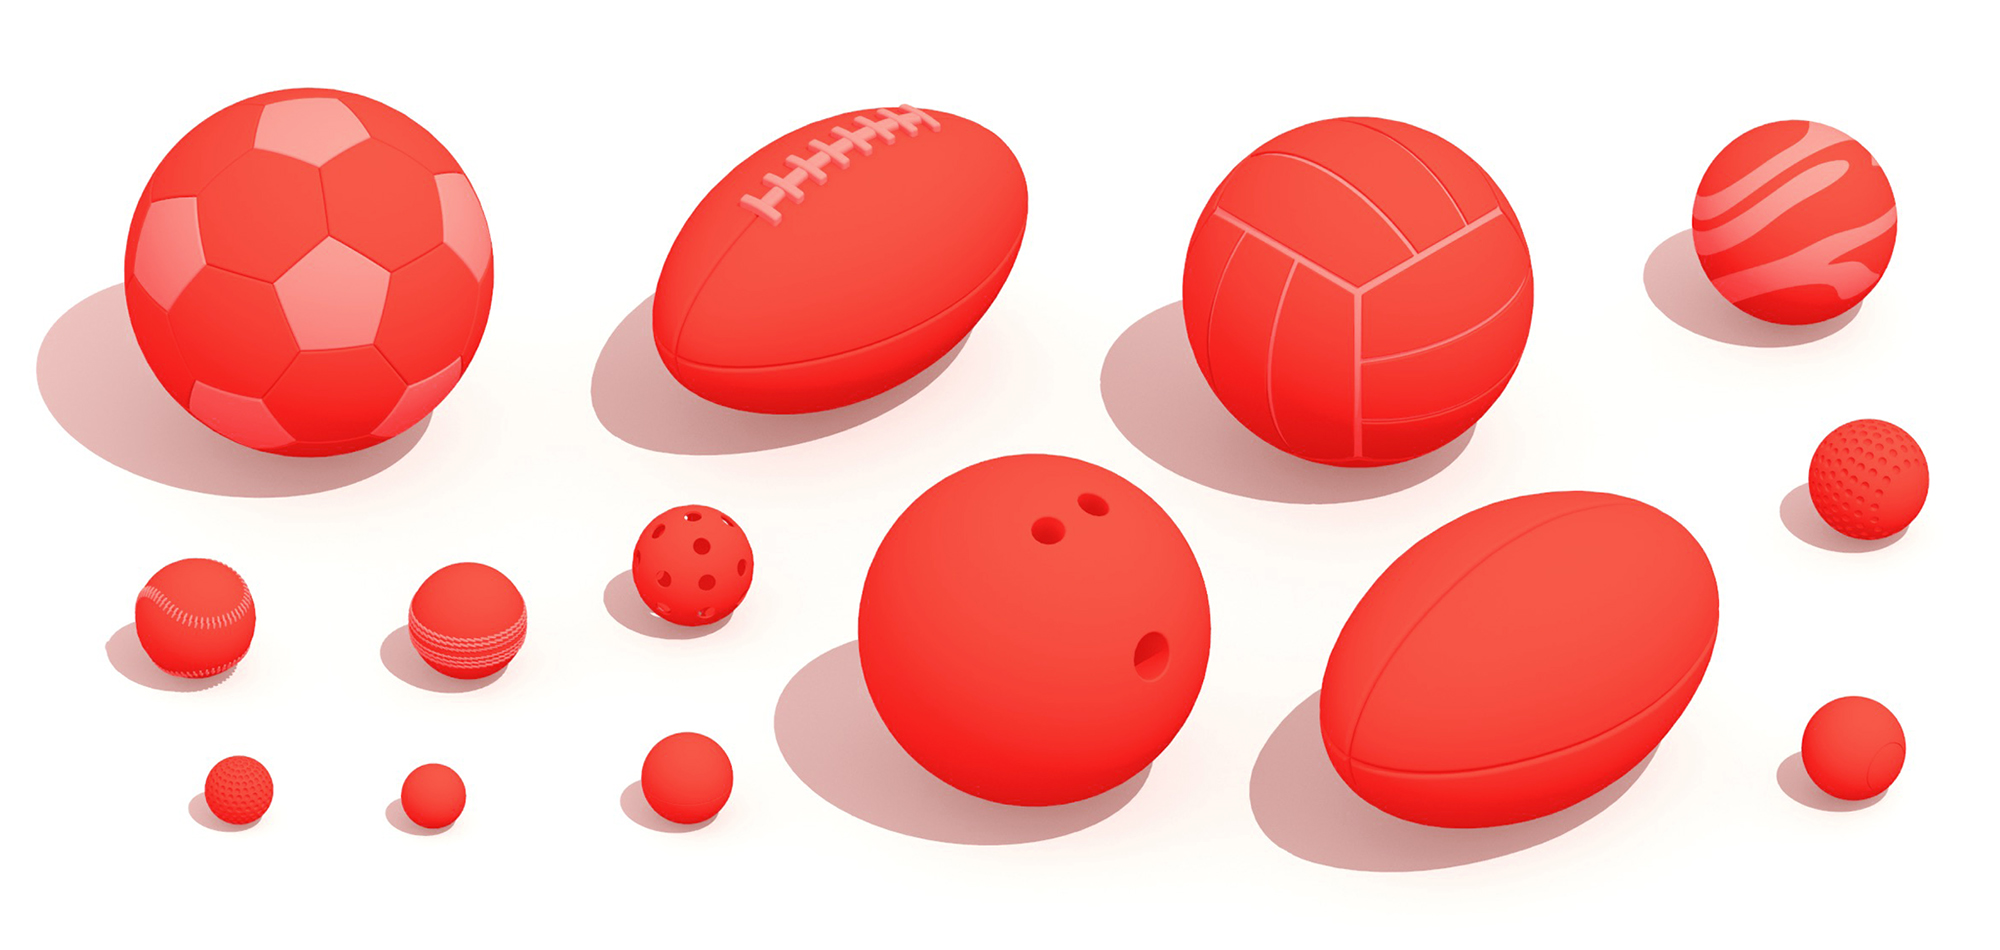 Scaled collection of various balls used in sports games viewed in 3D